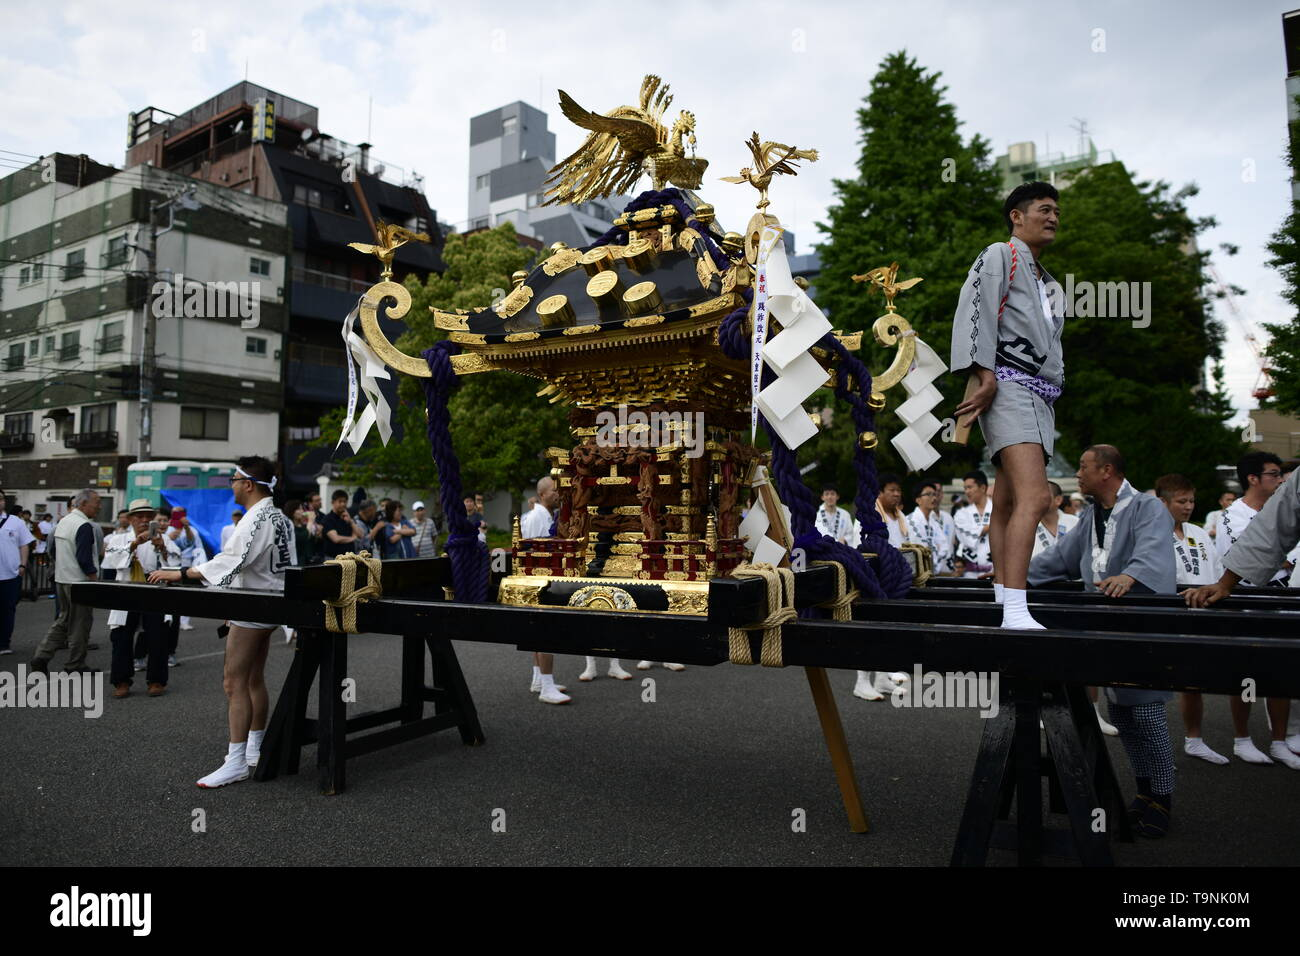 """TOKYO, JAPAN - MAY 18: A portable shrine at rest during Tokyo's one of the largest three day festival called """"Sanja Matsuri"""" on May 18, 2019 in Tokyo, Japan. A boisterous traditional mikoshi (portable shrine) is carried in the streets of Asakusa to bring luck, blessings and prosperity to the area and its inhabitants. (Photo: Richard Atrero de Guzman/ AFLO) Stock Photo"""